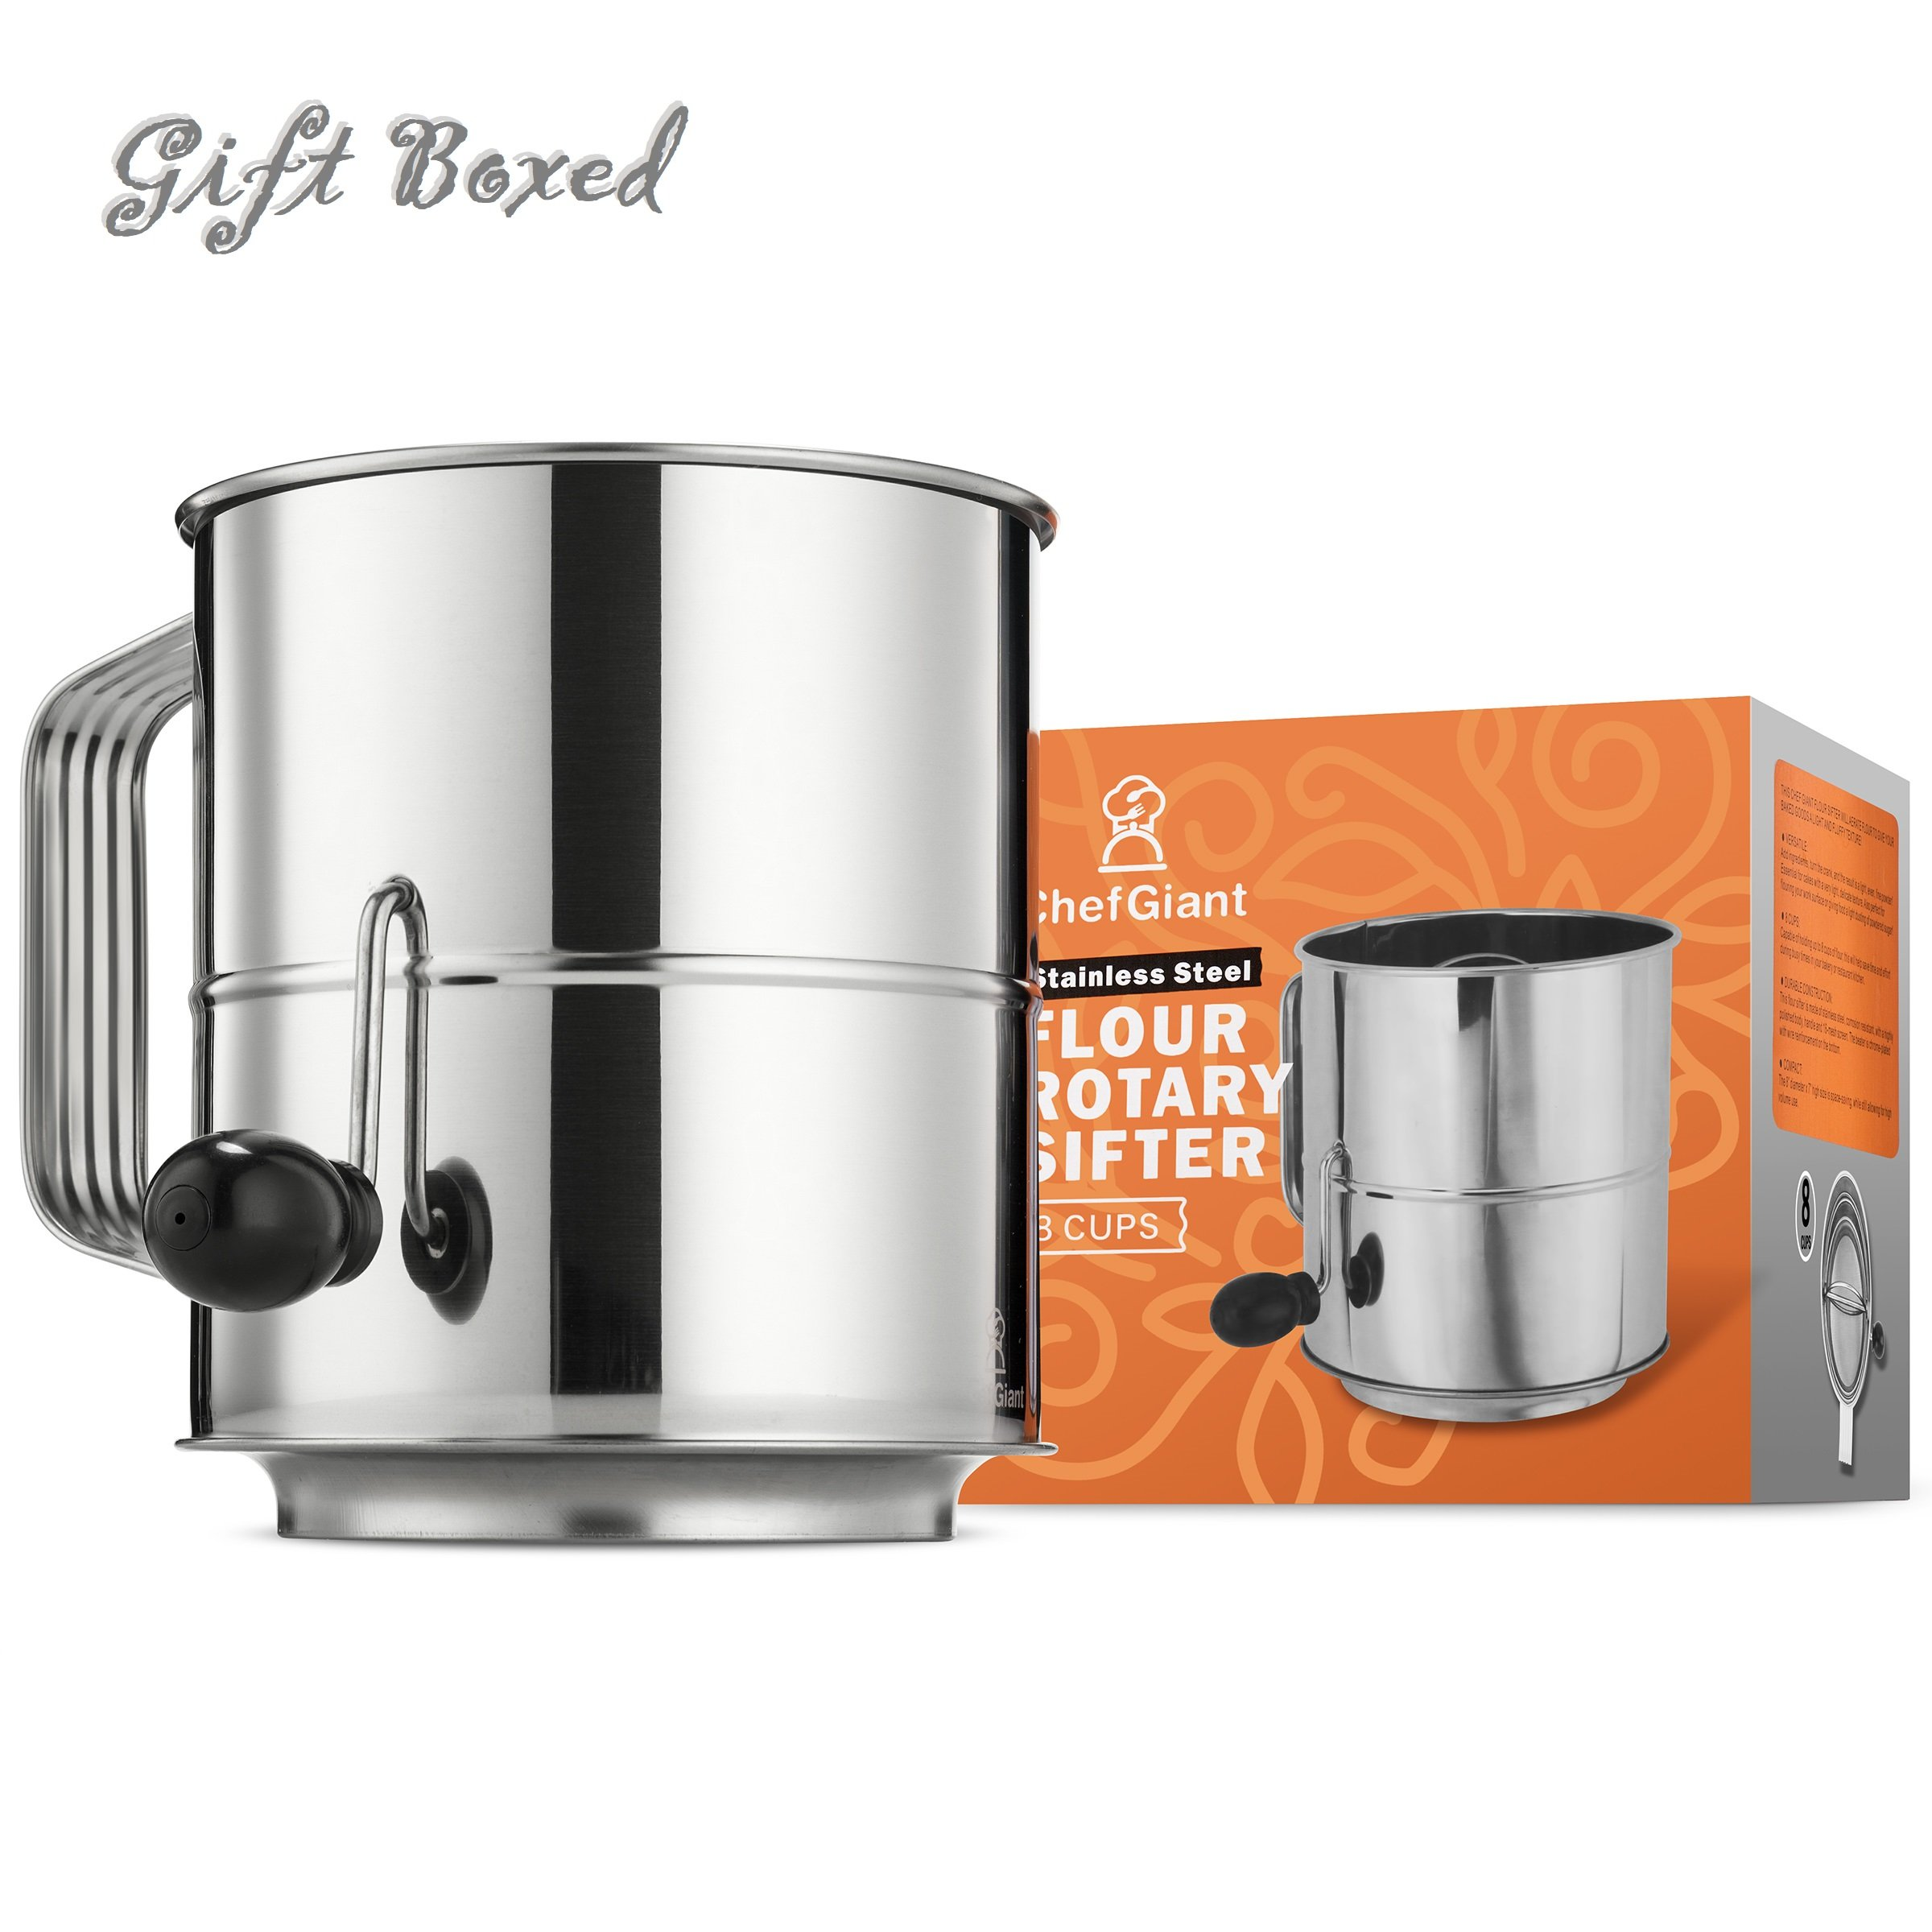 ChefGiant Flour Sifter 8 Cup Stainless Steel Rotary Hand Crank with 16 Fine Mesh Screen, Corrosion Resistant Baking Tool Sugar Sifter - Decorate Cakes, Pies, Pastries, Cupcake - Great Gift Idea